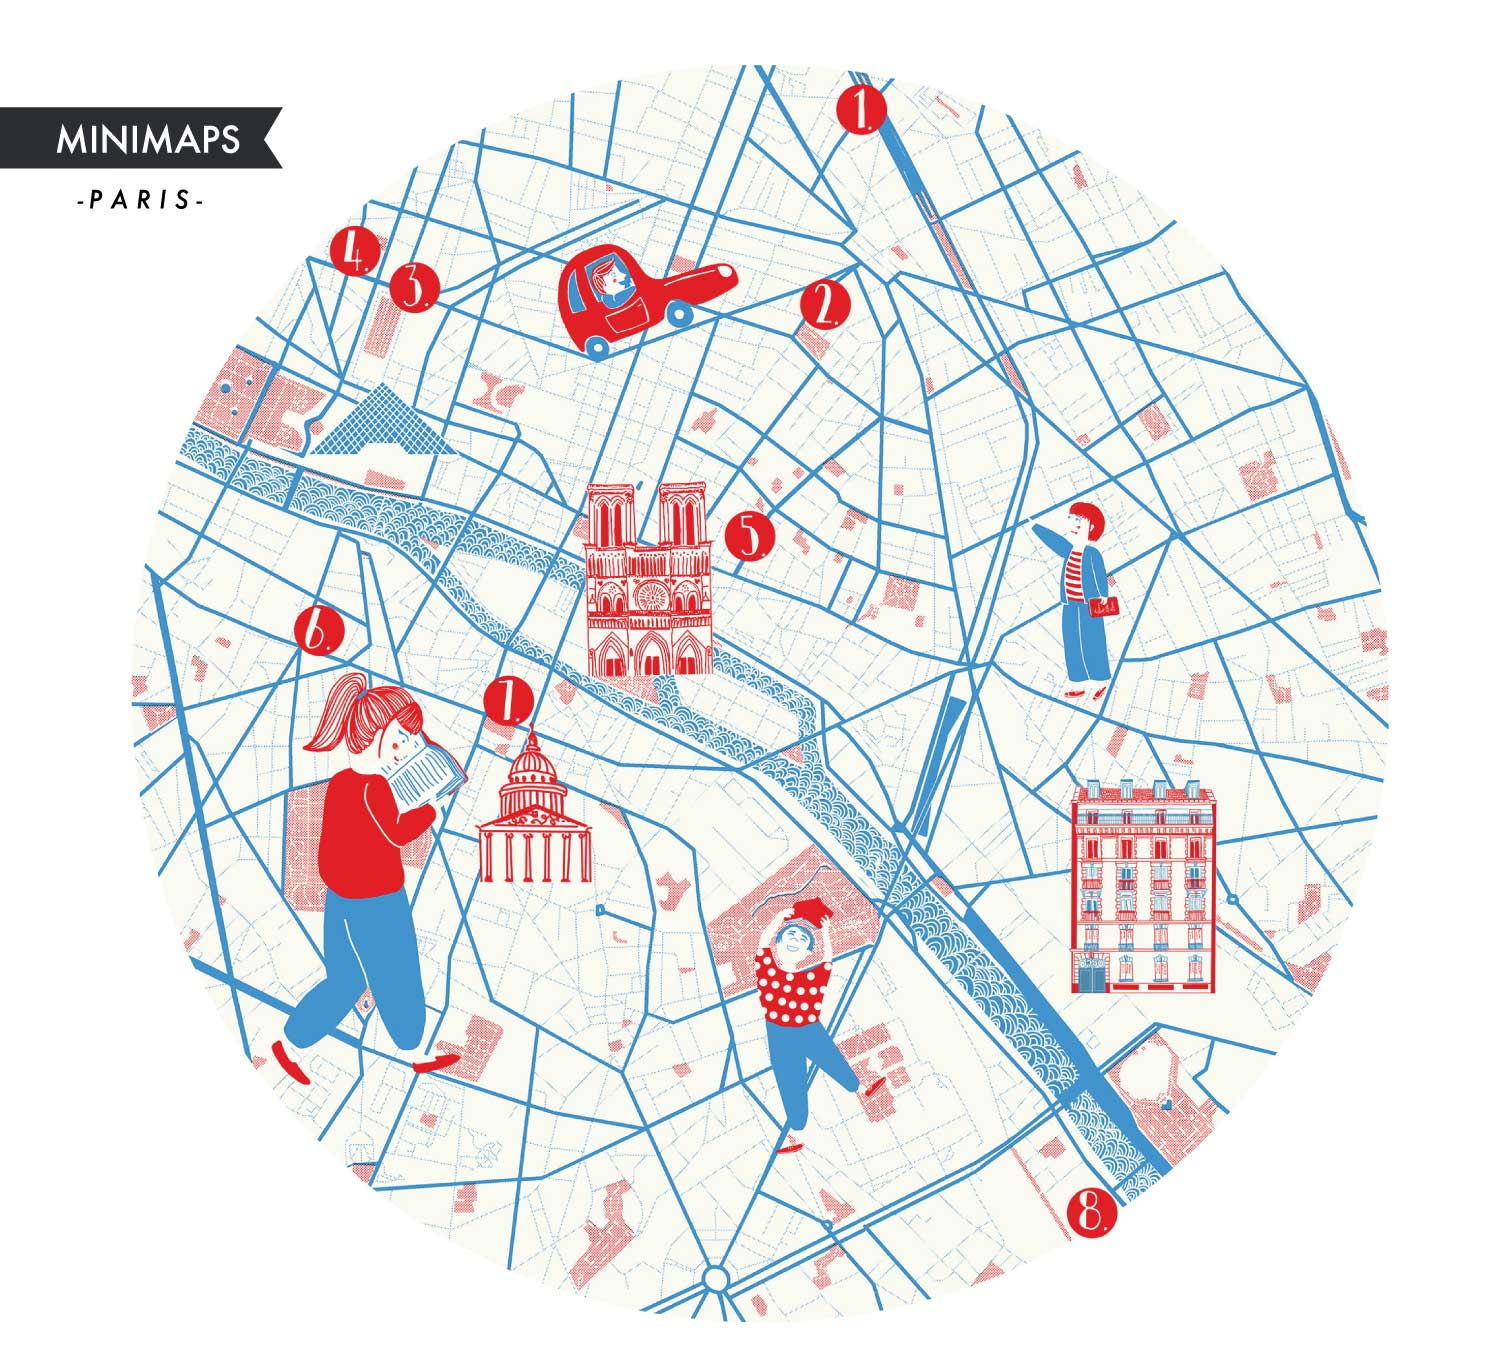 Paris-Bookstores-Minimap_NEW2019